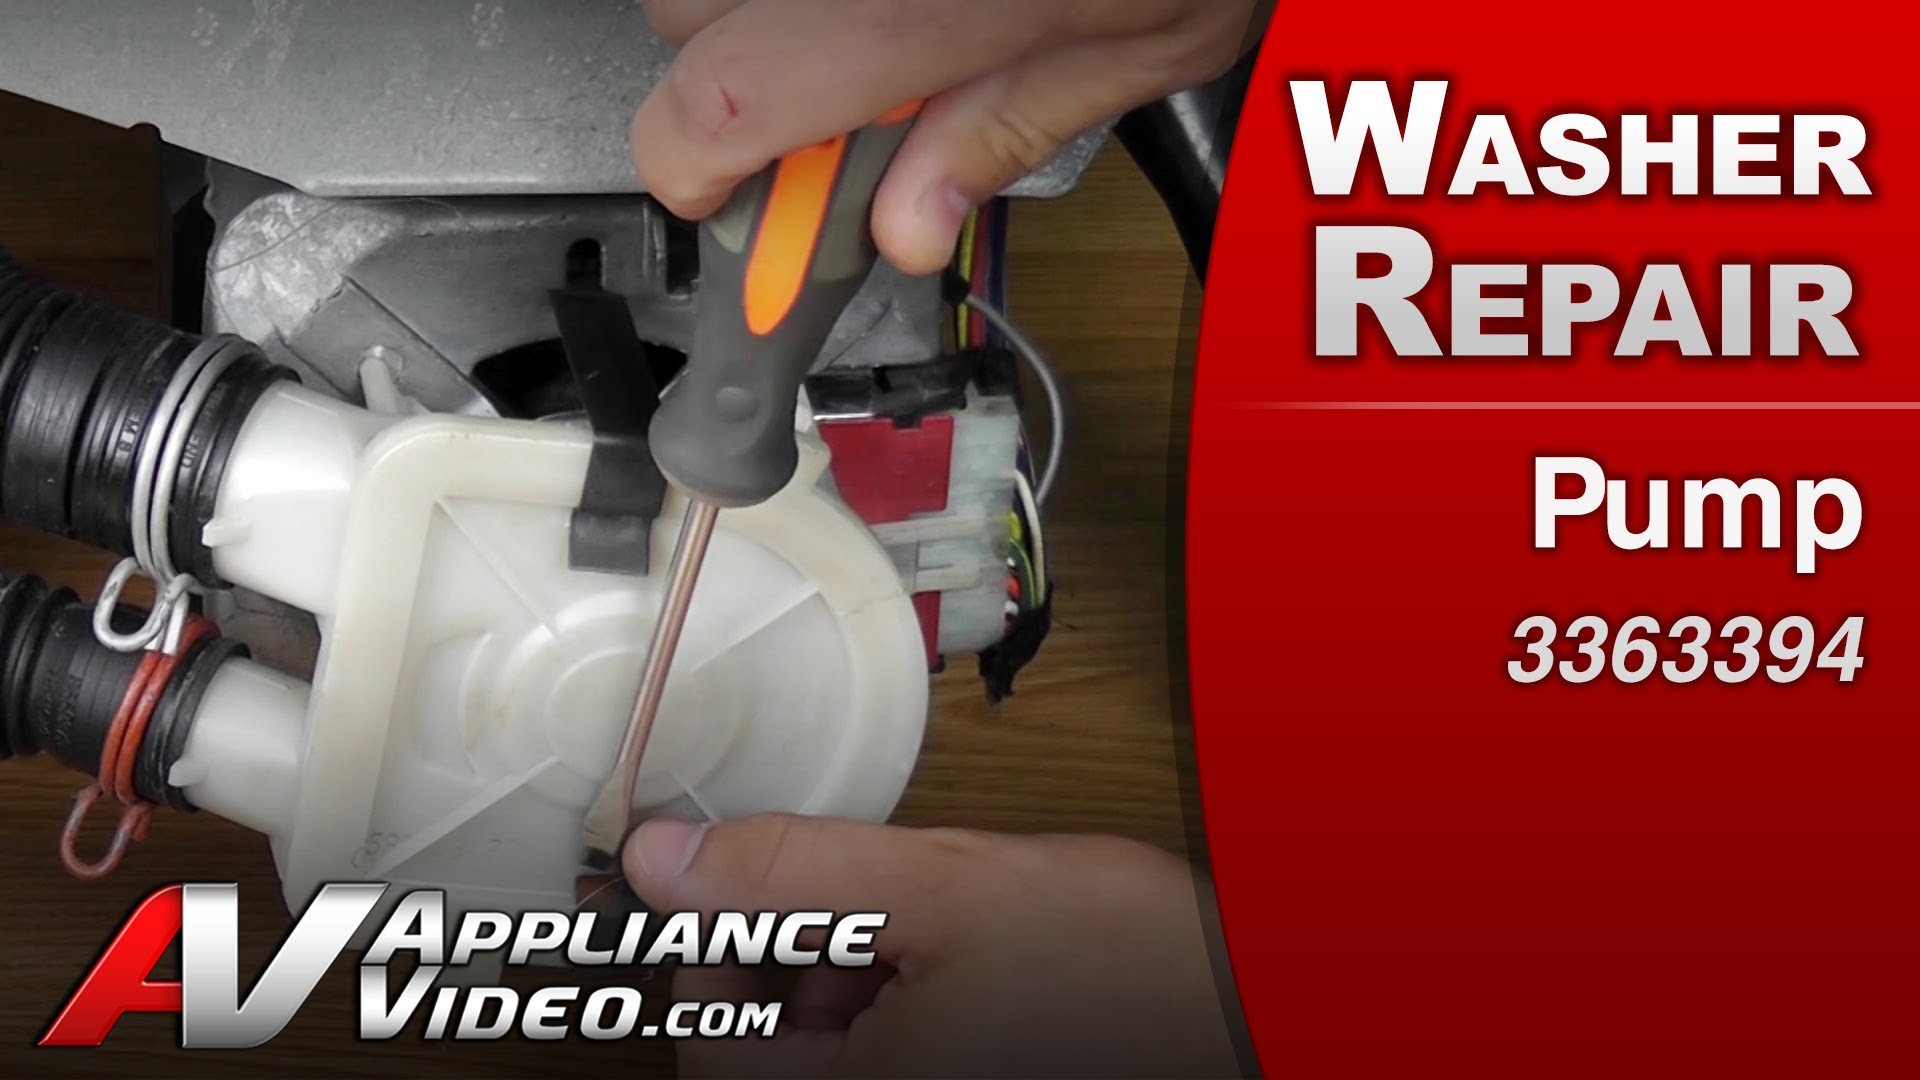 Whirlpool Lsb6500pw4 Washer Leaking Water Appliance Video